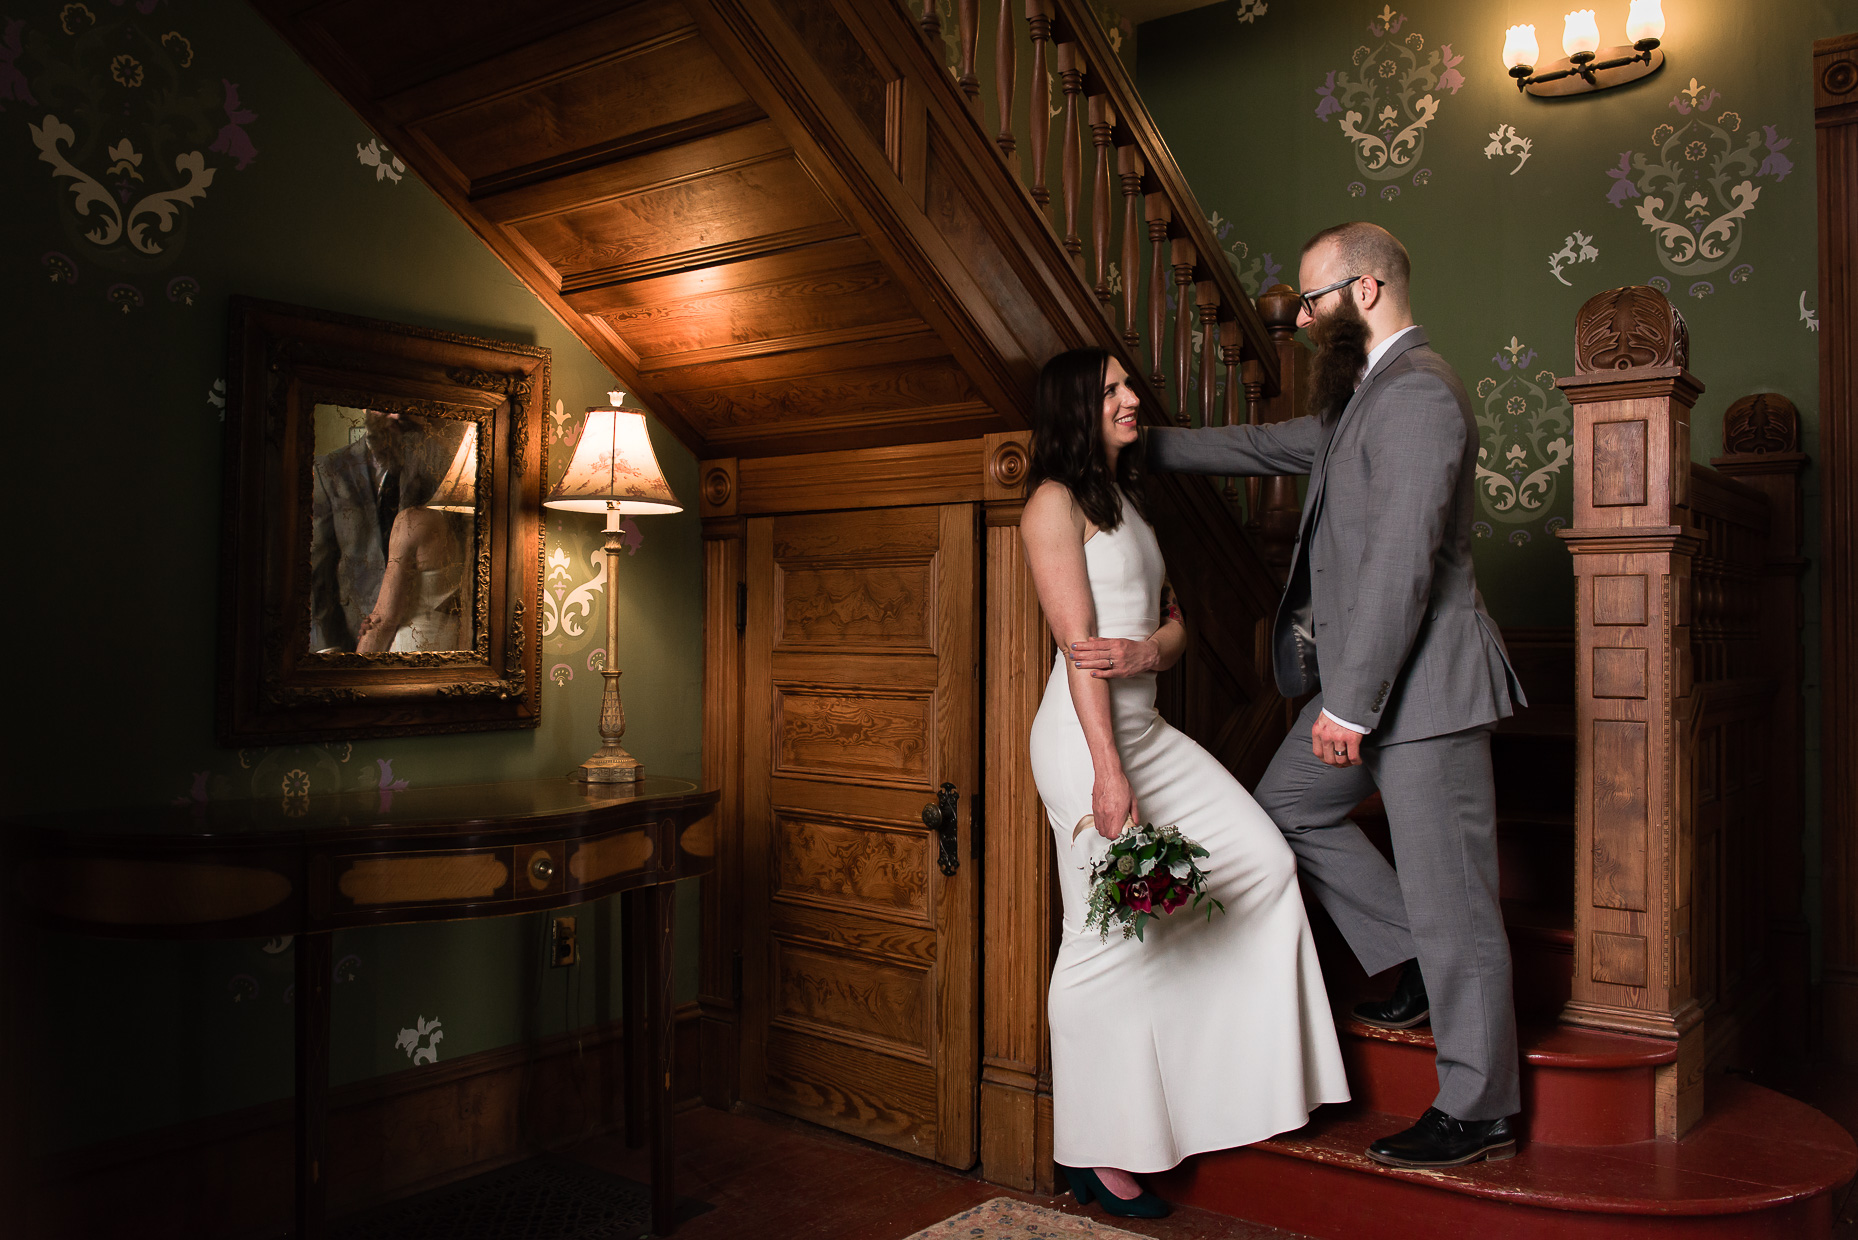 austin-wedding-photographers-barr-mansion-staircase-wooden